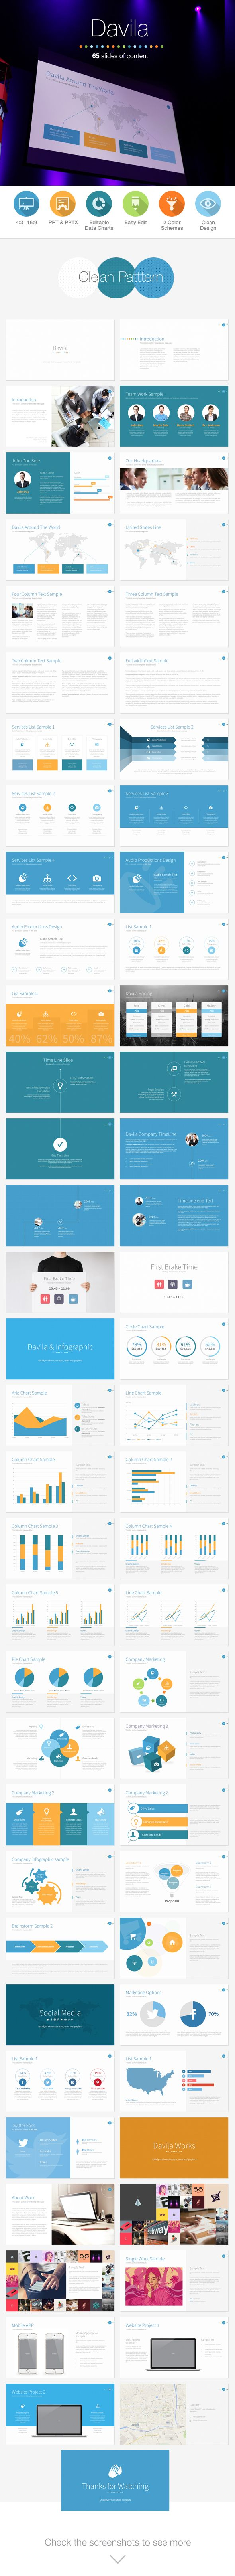 69 best presentation images on pinterest | page layout, Presentation templates